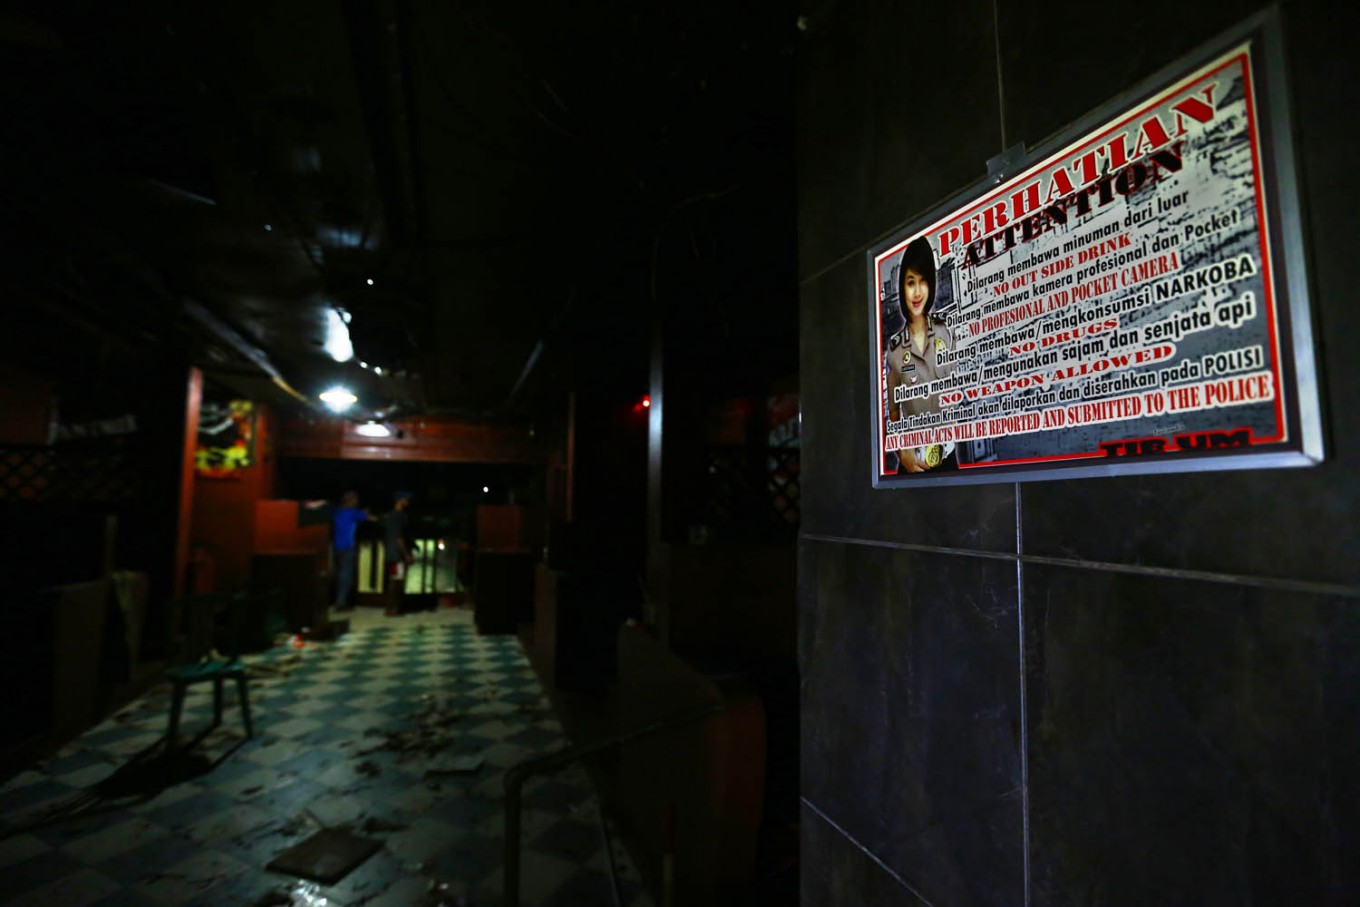 University student charged with running prostitutes in Jakarta